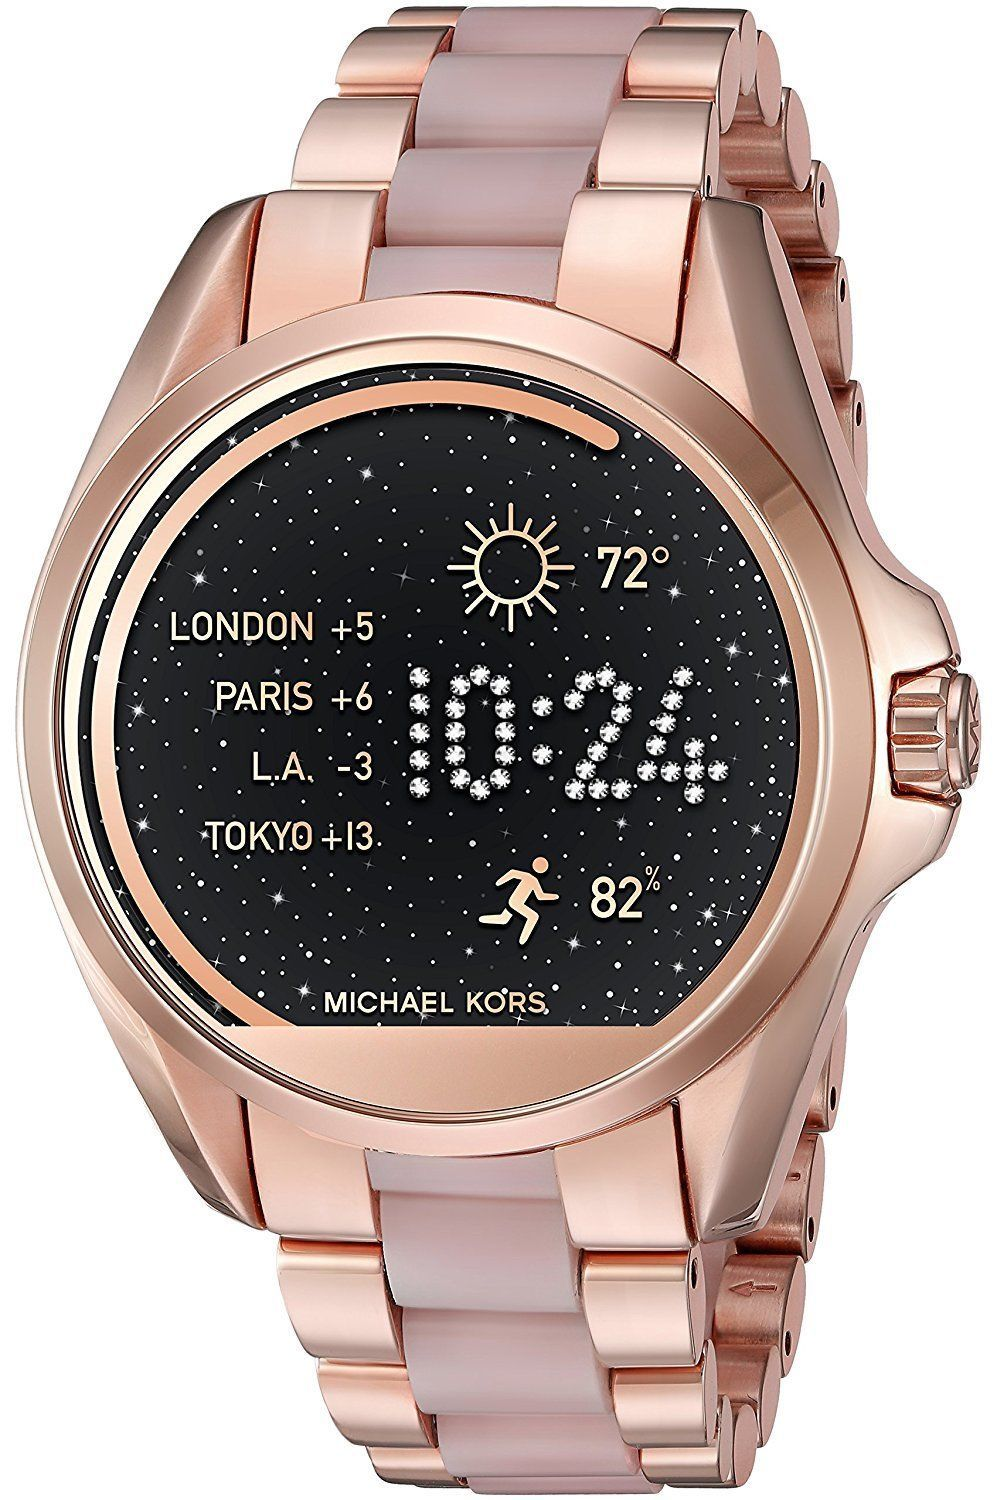 792dc2fa4774 FACTORY SEALED Michael Kors Access Rose Gold Pink Two Tone Smartwatch  MKT5013